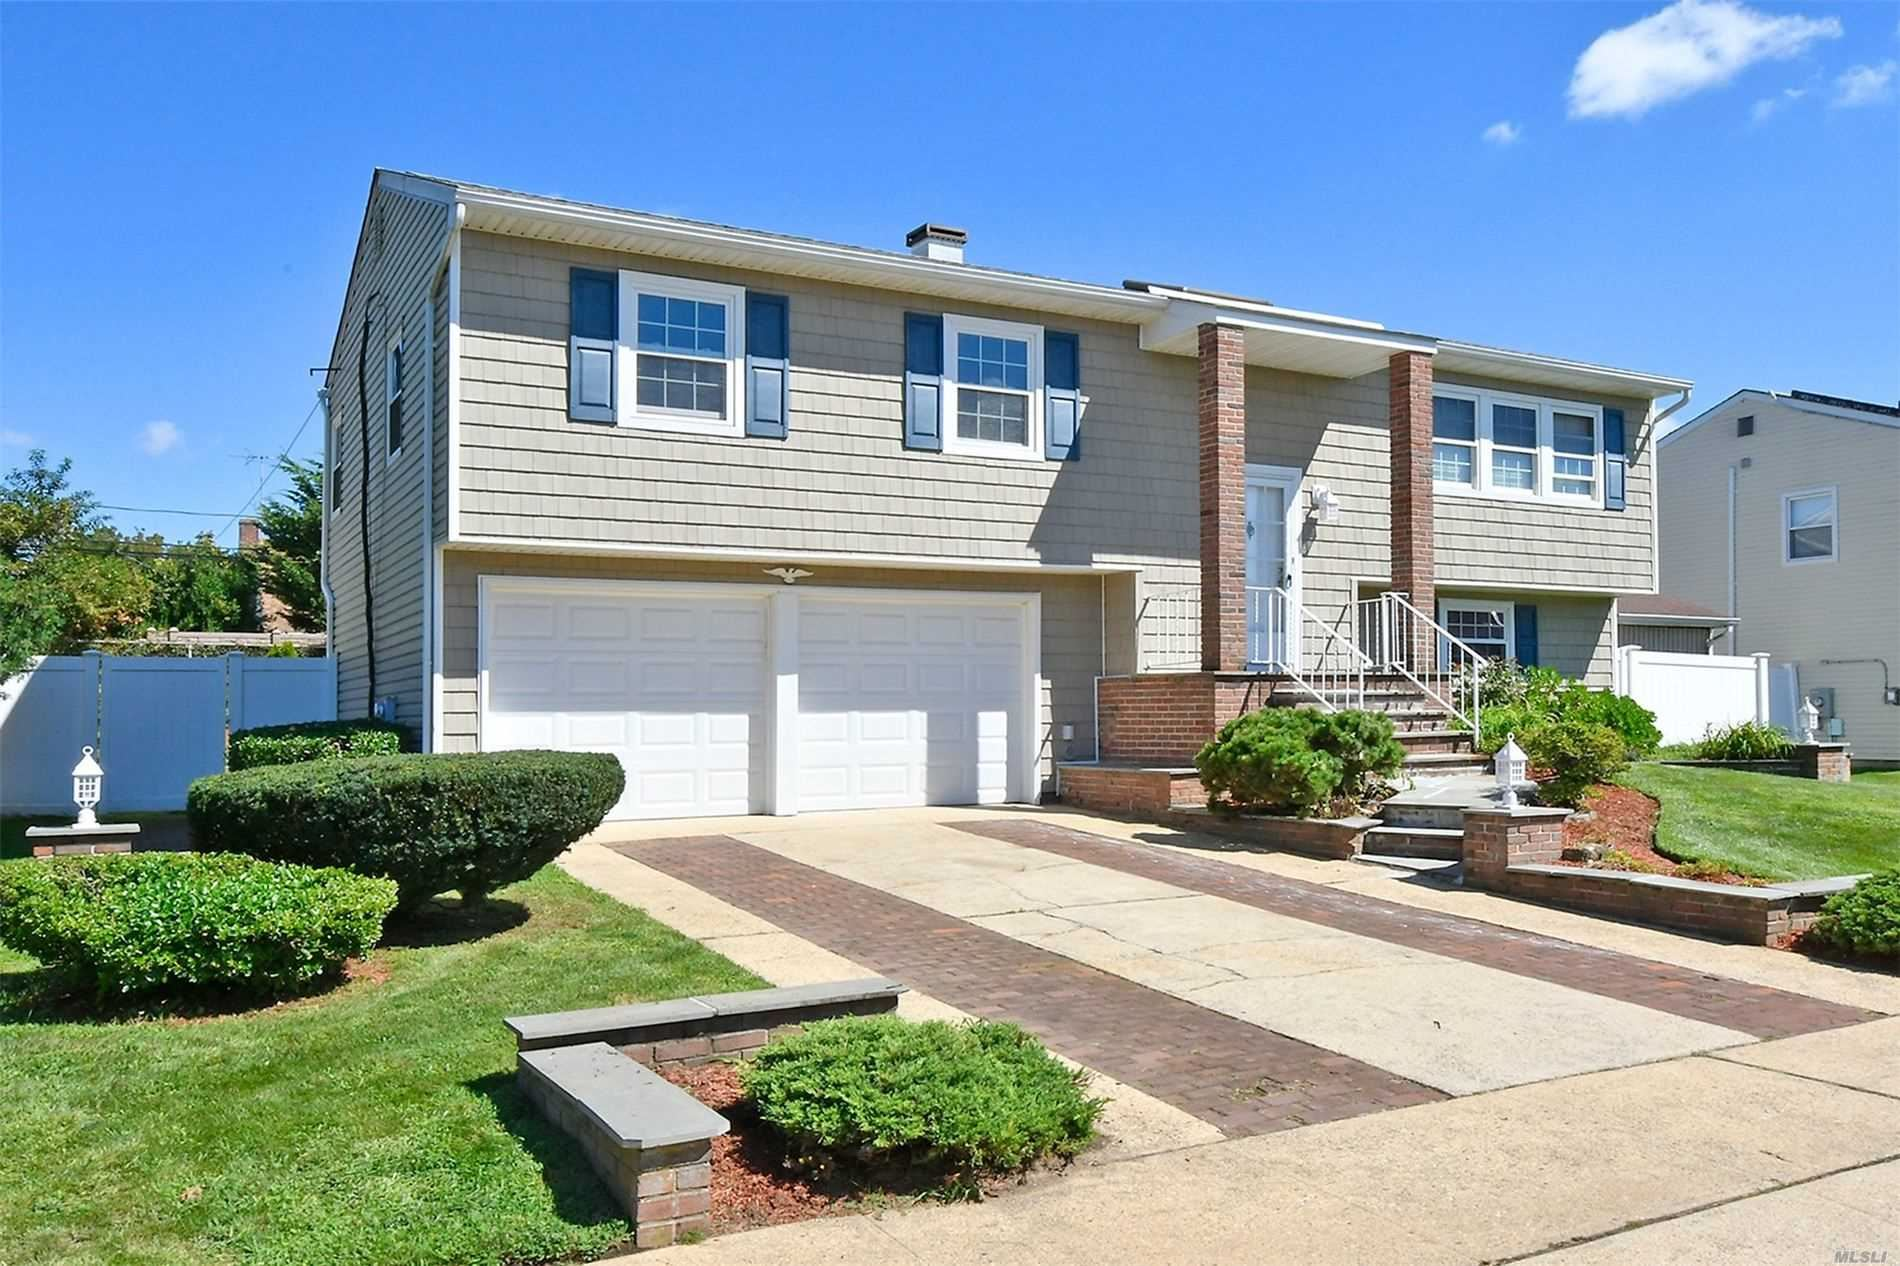 275 N Oak Street, Massapequa, NY 11758 - MLS#: 3245411